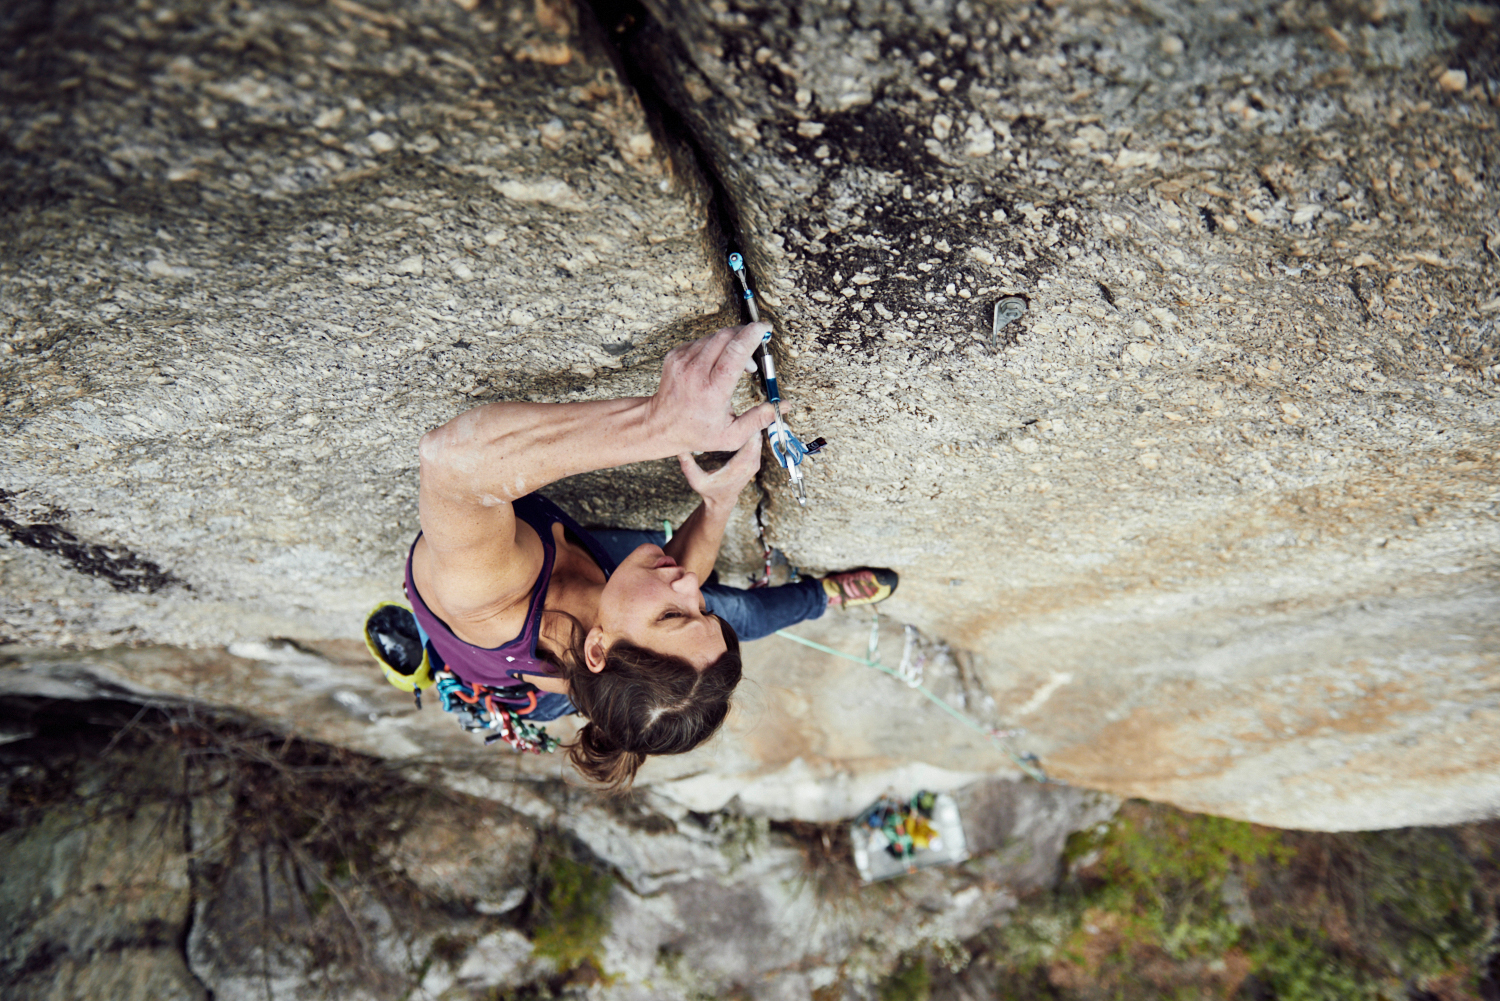 Wild Country Zero Friend cam in crack woman climbing